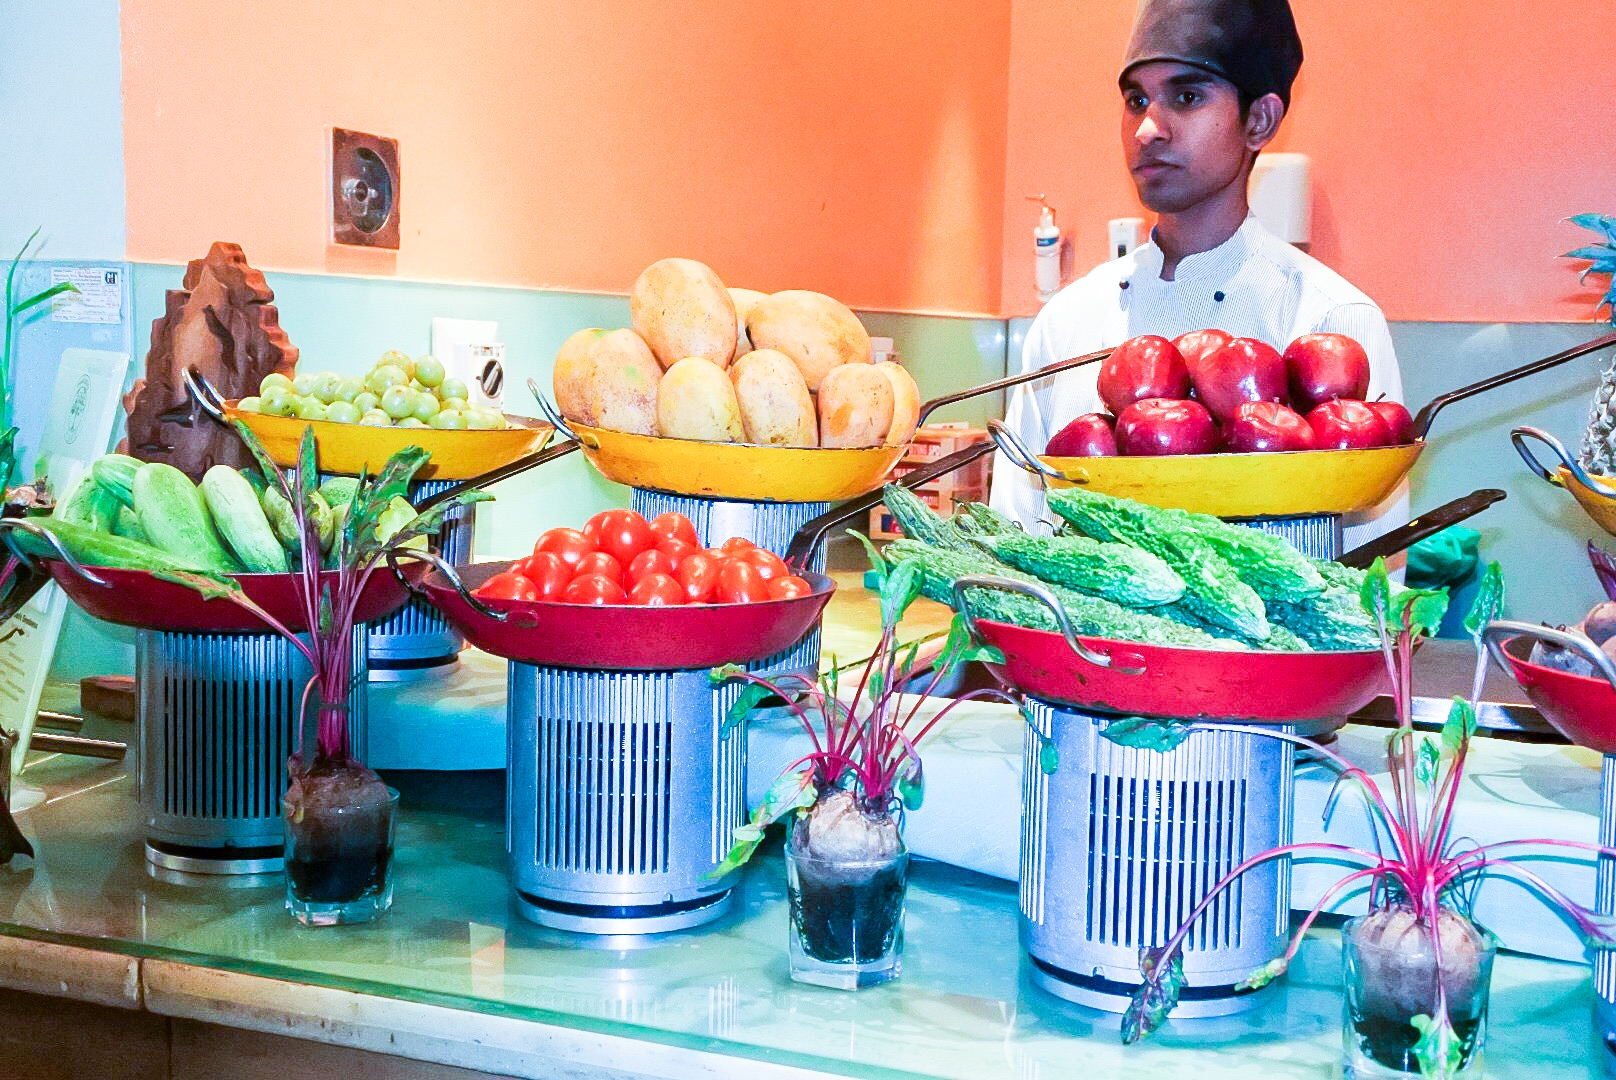 The fresh juice counter with a wide array of fruits and veggies available for juicing